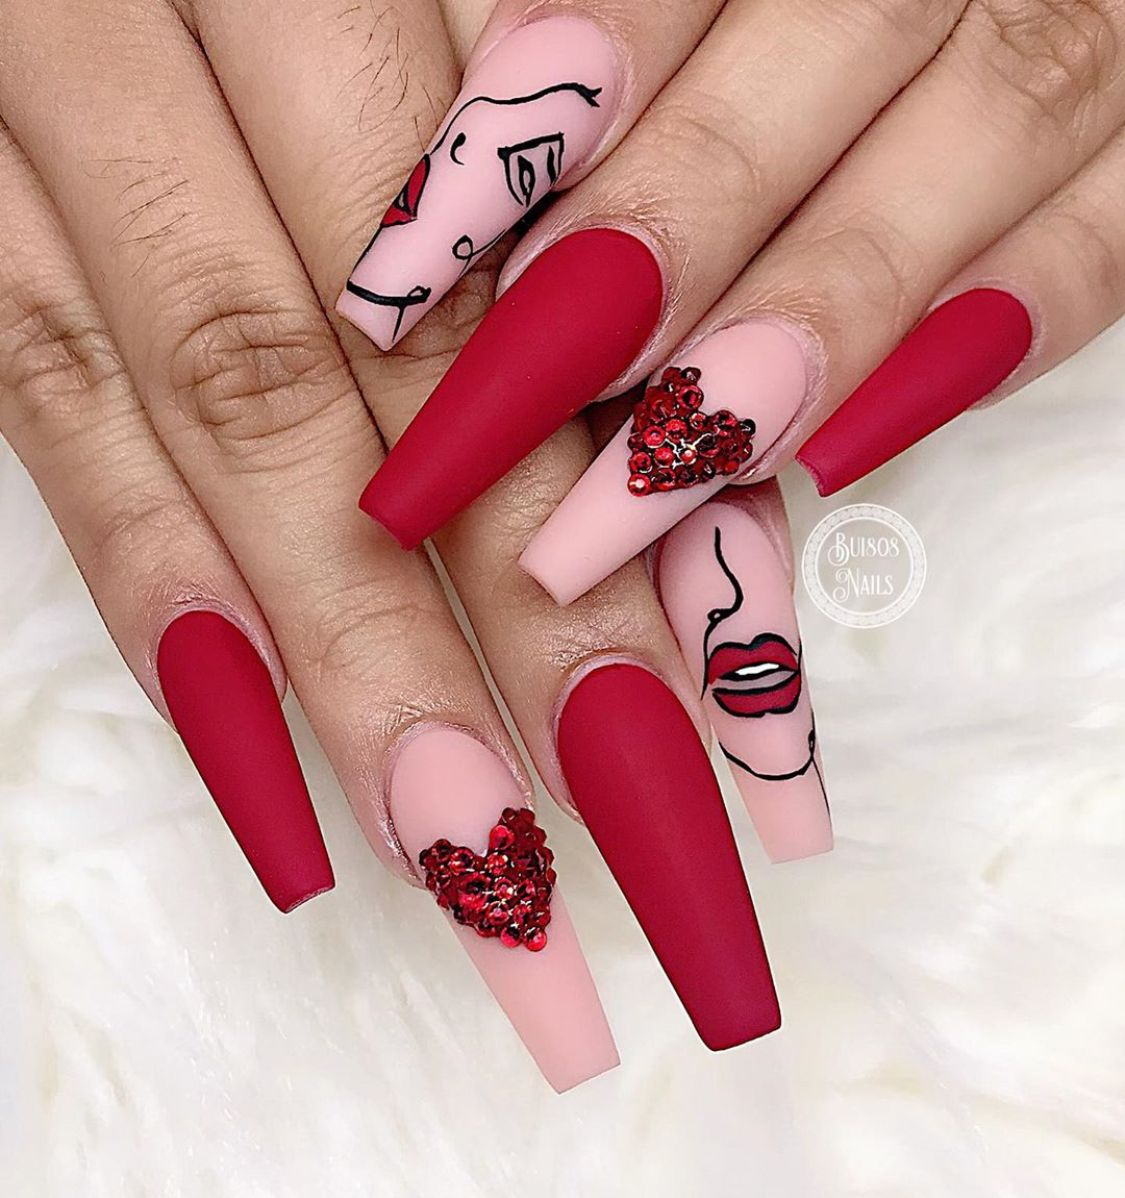 Pin by Yamz on Nails in 2020 How to clean makeup brushes